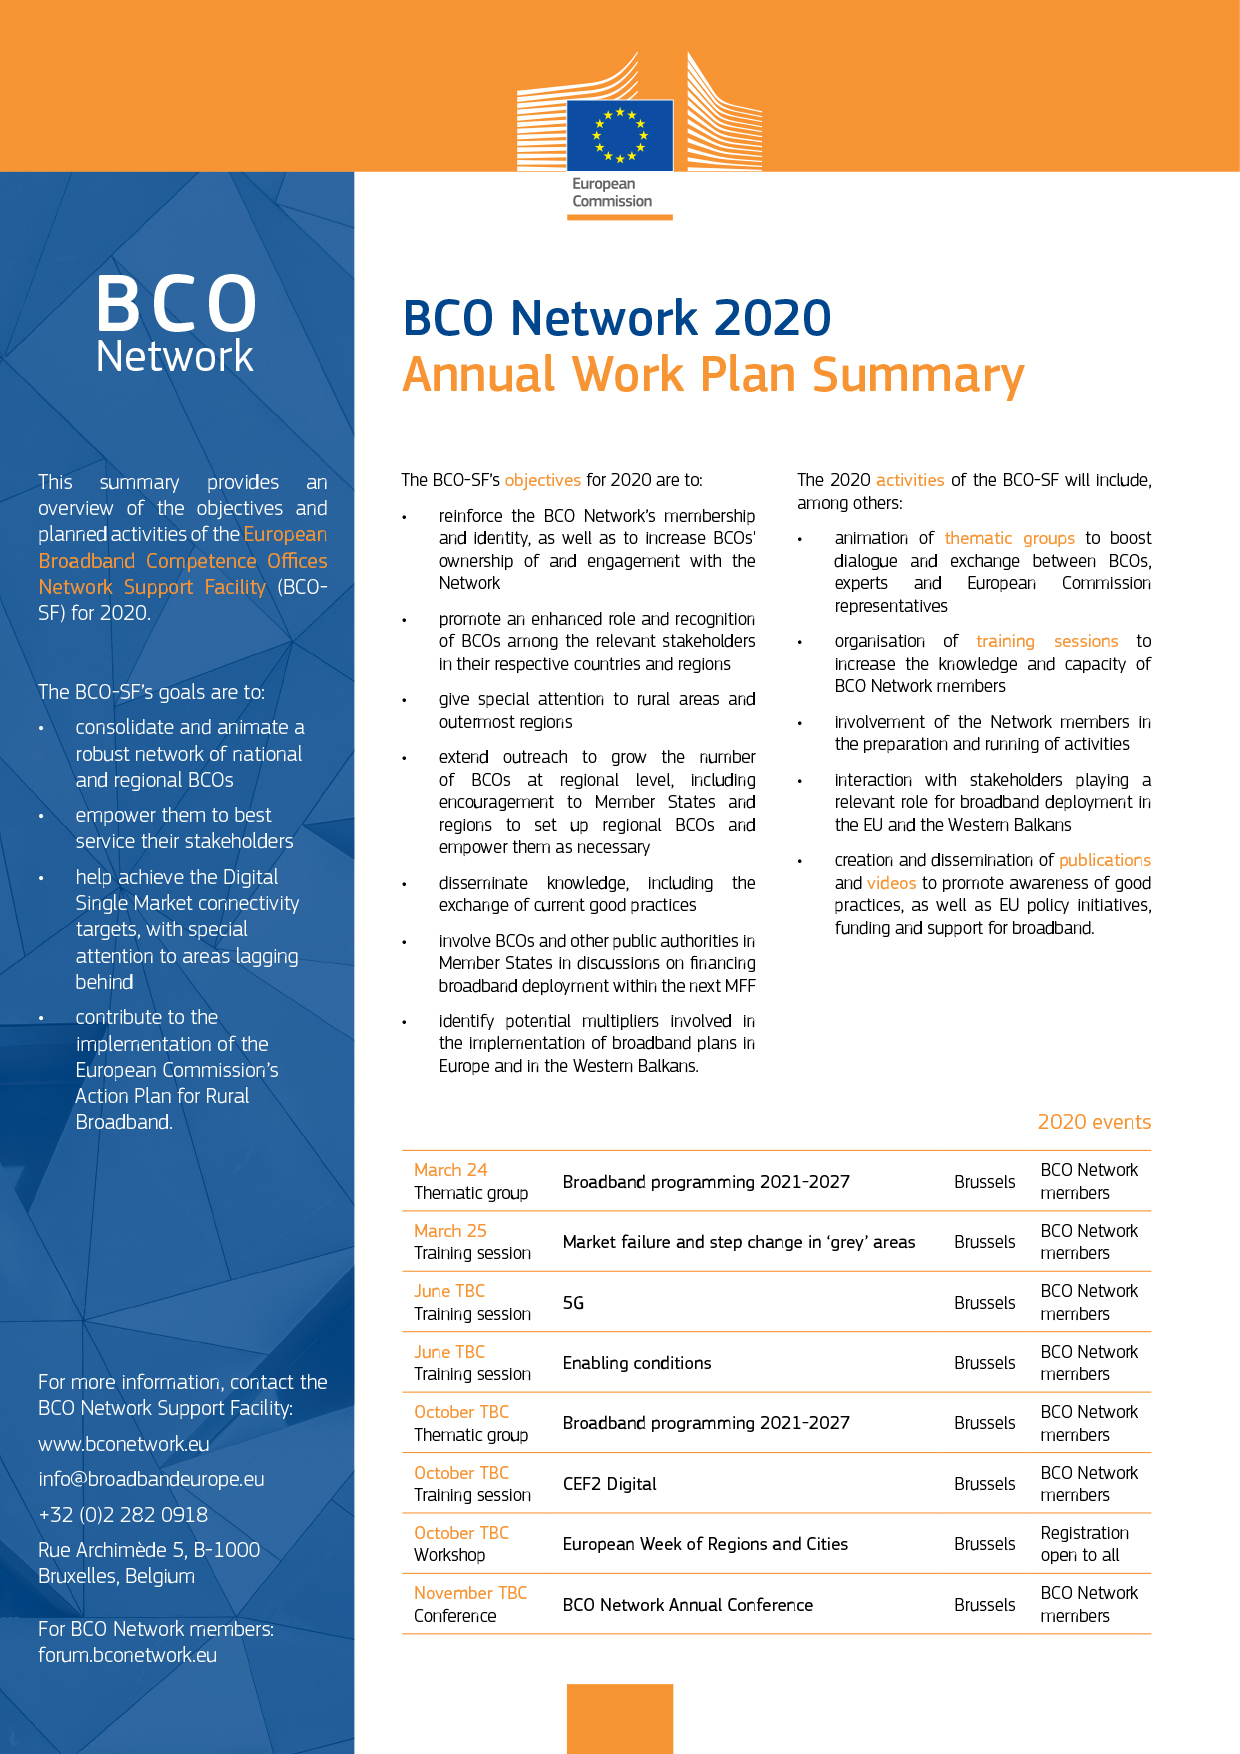 BCO Network 2020 Annual Work Plan Summary